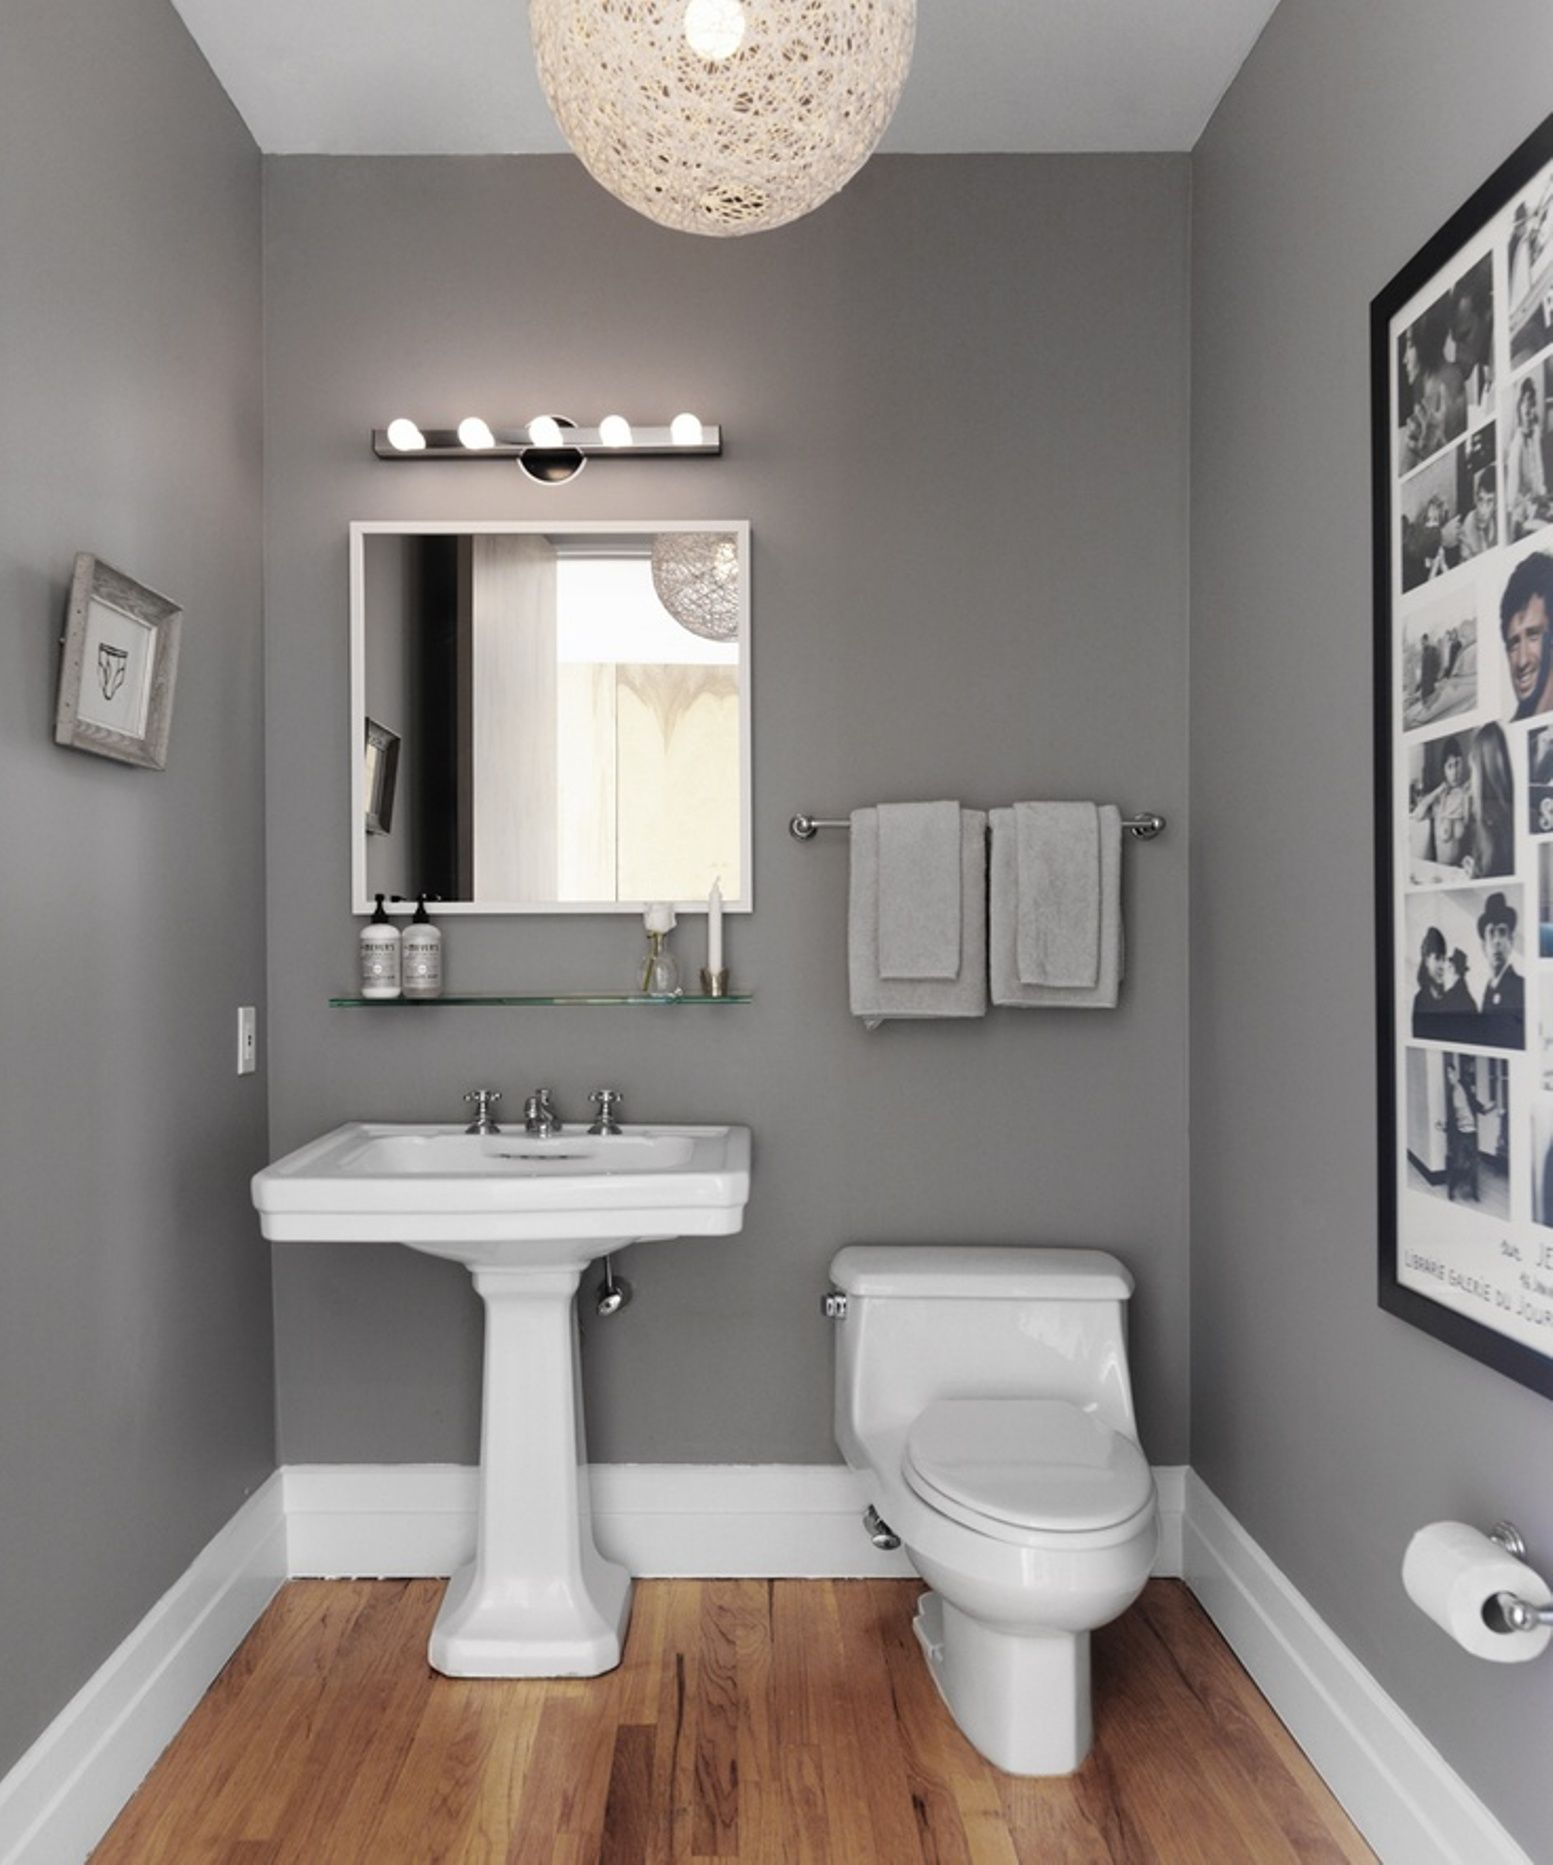 Bathroom paint grey - Modern Powder Room With Steel Gray Walls And White Twine Pendant Over Oak Hardwood Floors Gray Powder With White Square Mirror Over Vintage Glass Shelf And